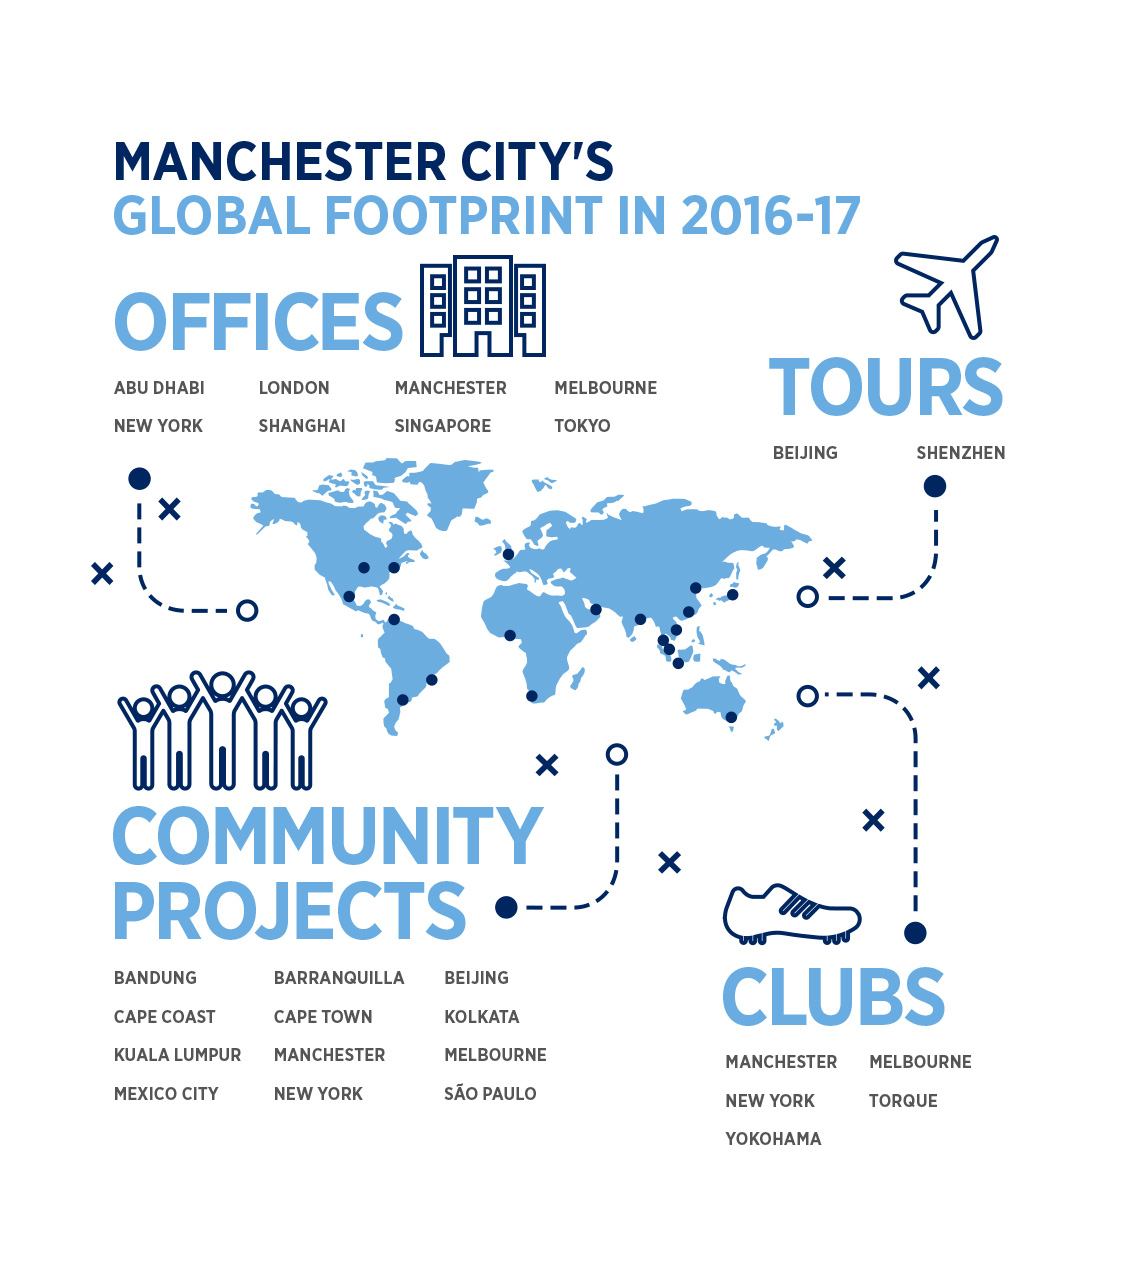 Manchester City's global footprint in 2016-17